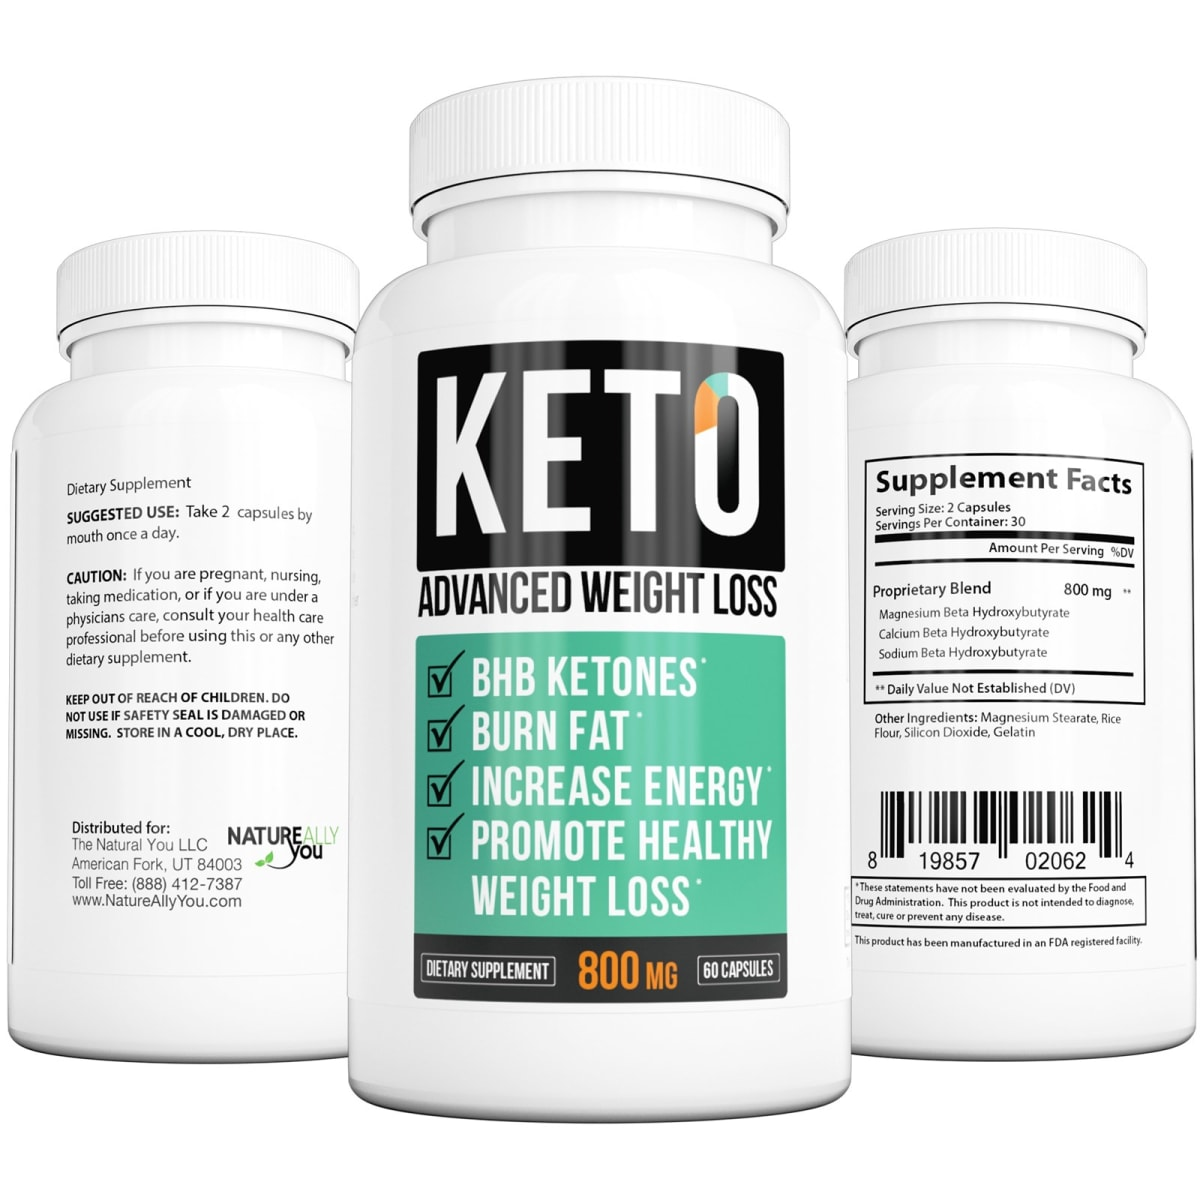 Keto Advanced Weight Loss Supplement